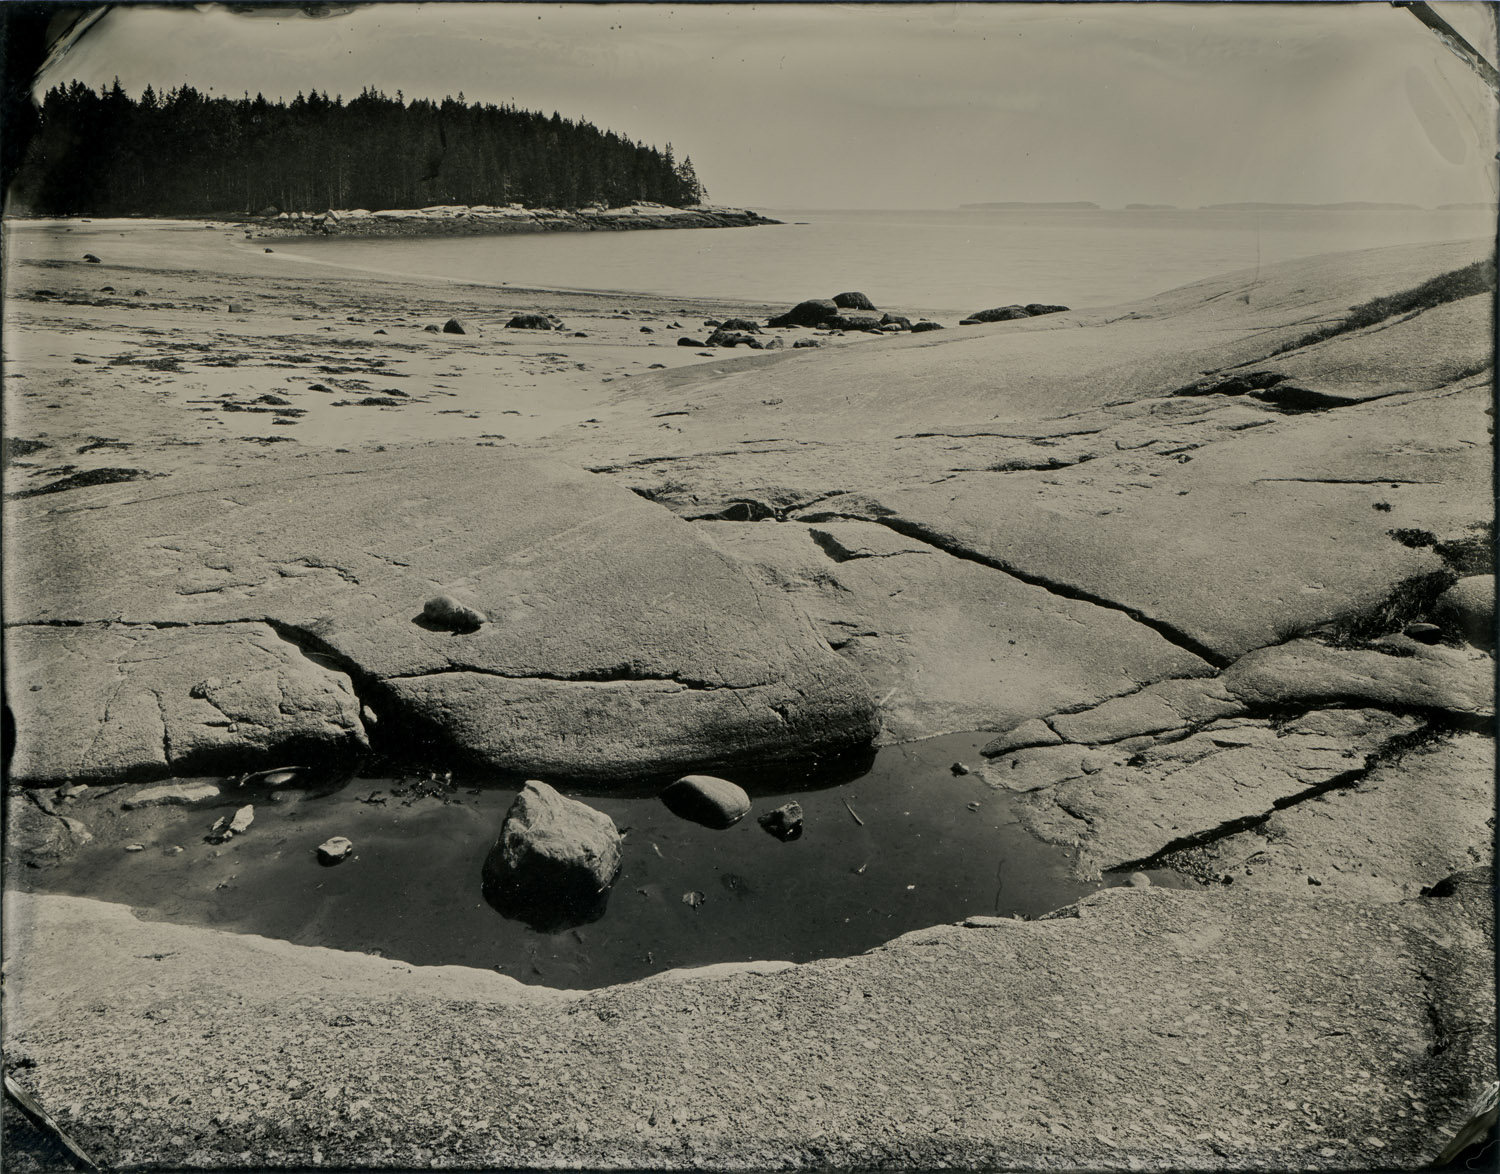 Birch Point State Park, Tintypes, 3.5 x 4.5 inches